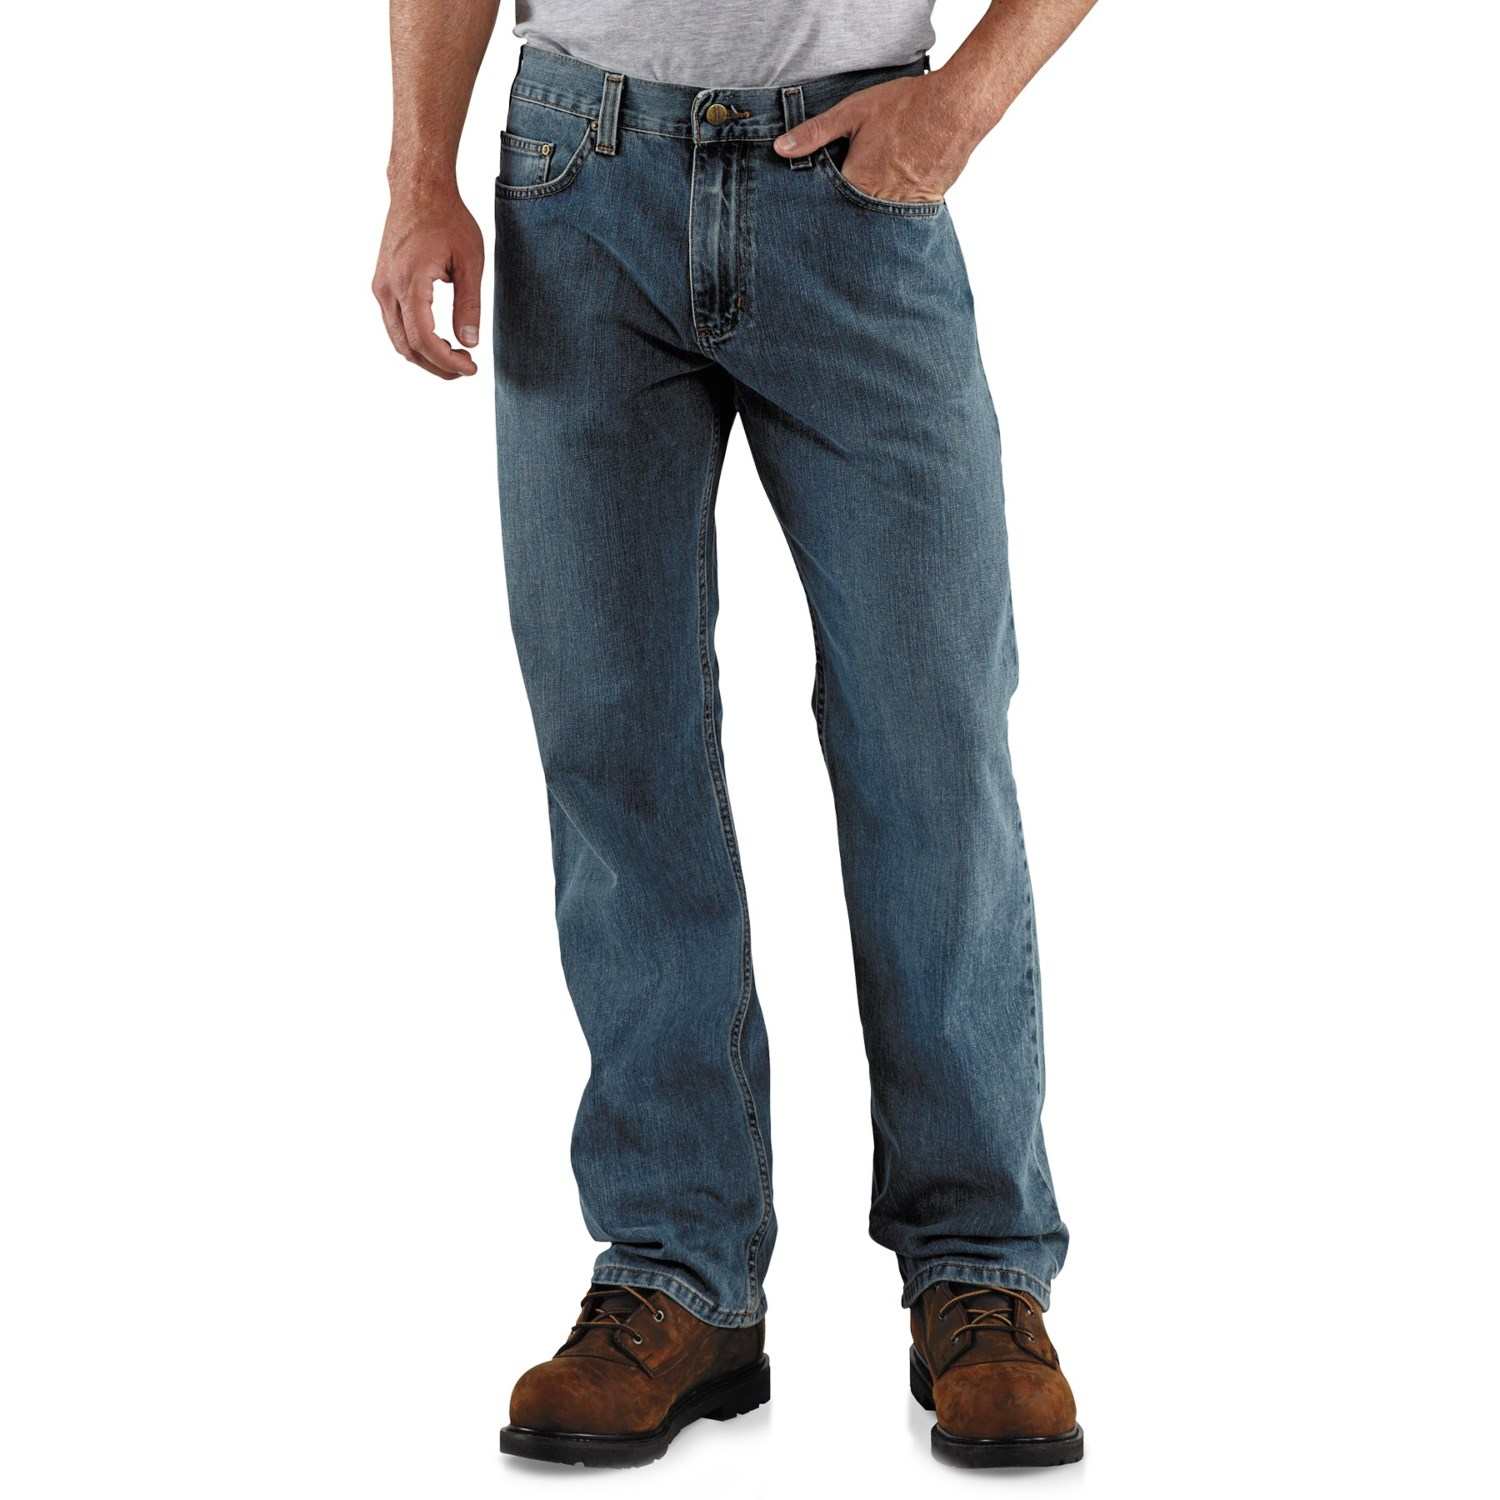 Carhartt Loose Fit Jeans (For Men)